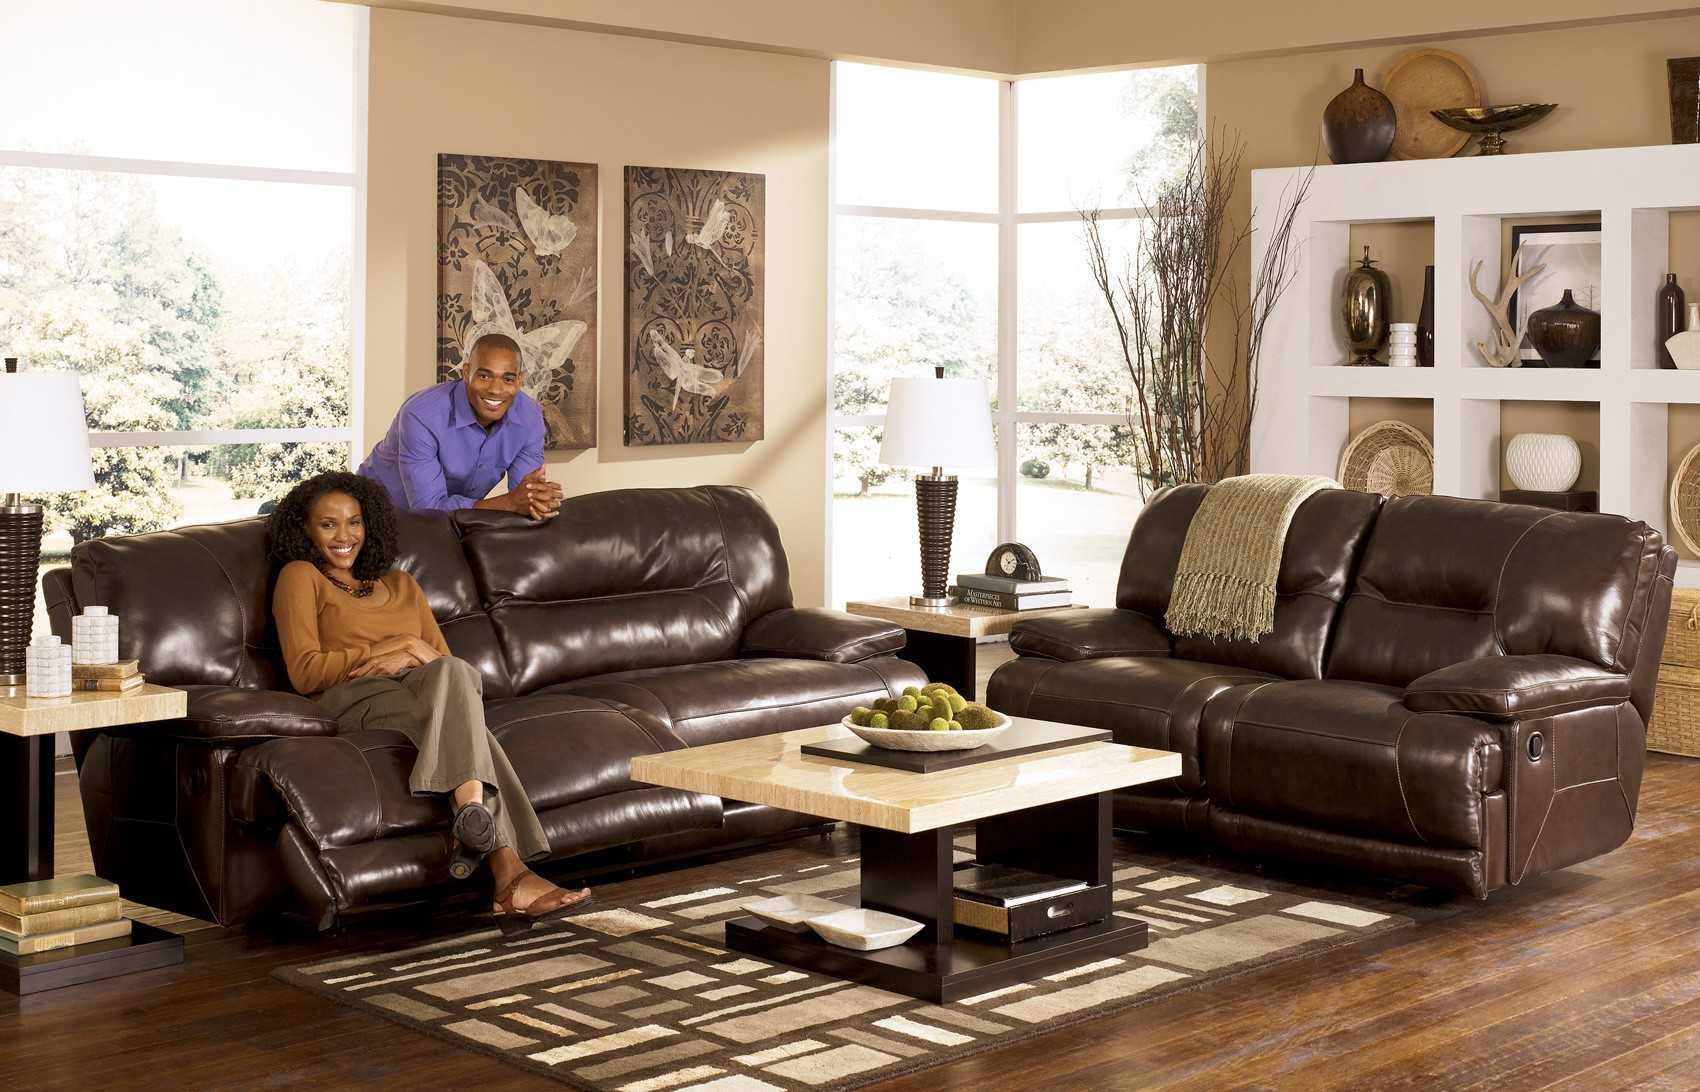 Leather Sofa Sets For Living Room Similiar Ashley Leather Sofa Set Keywords